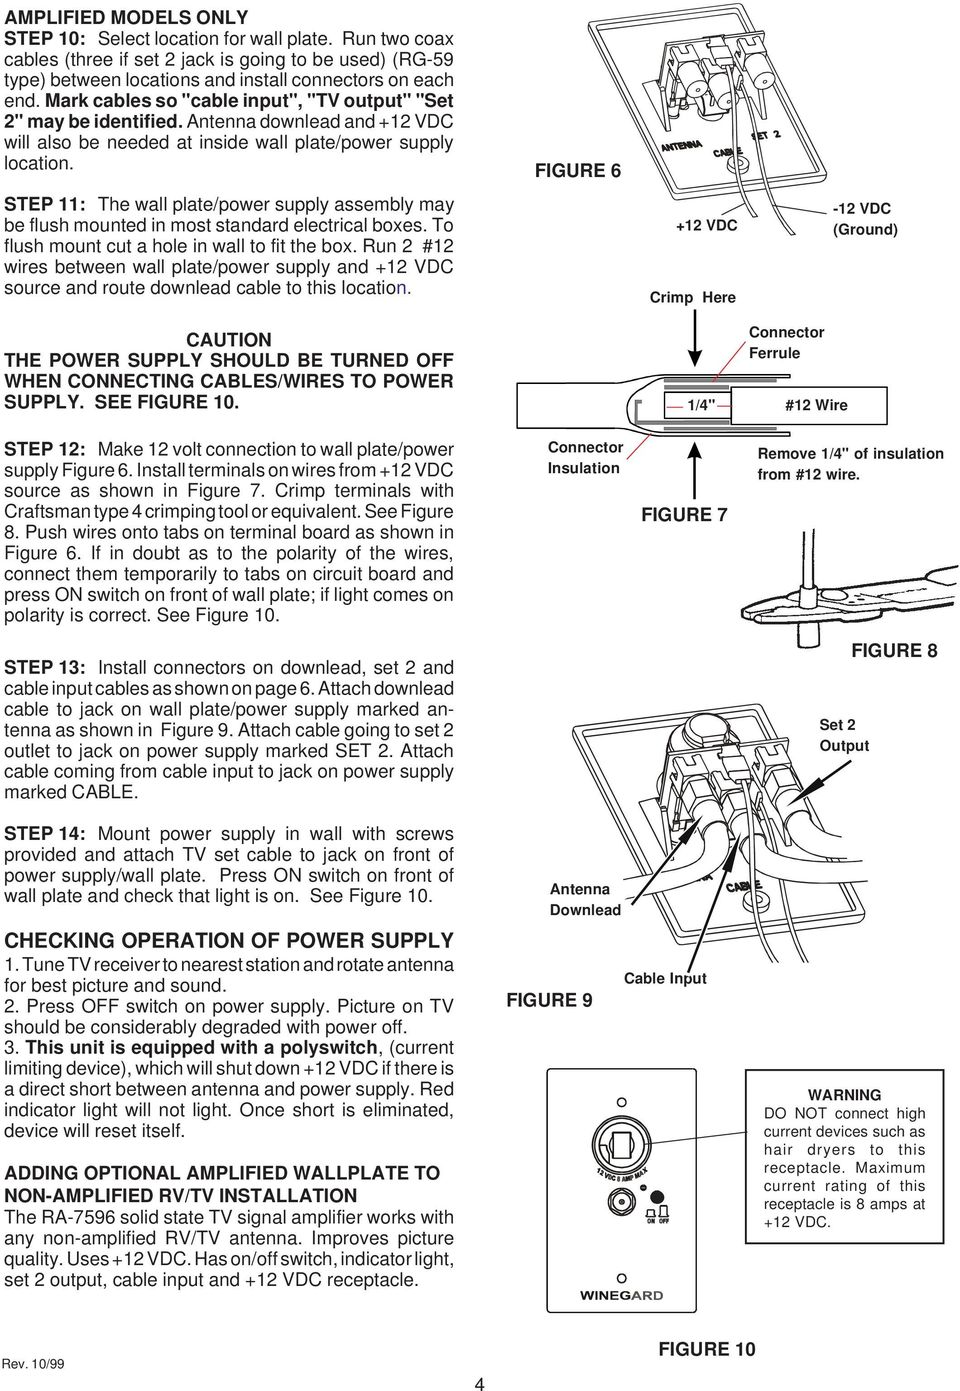 hight resolution of figure 6 step 11 the wall plate power supply assembly may be flush mounted